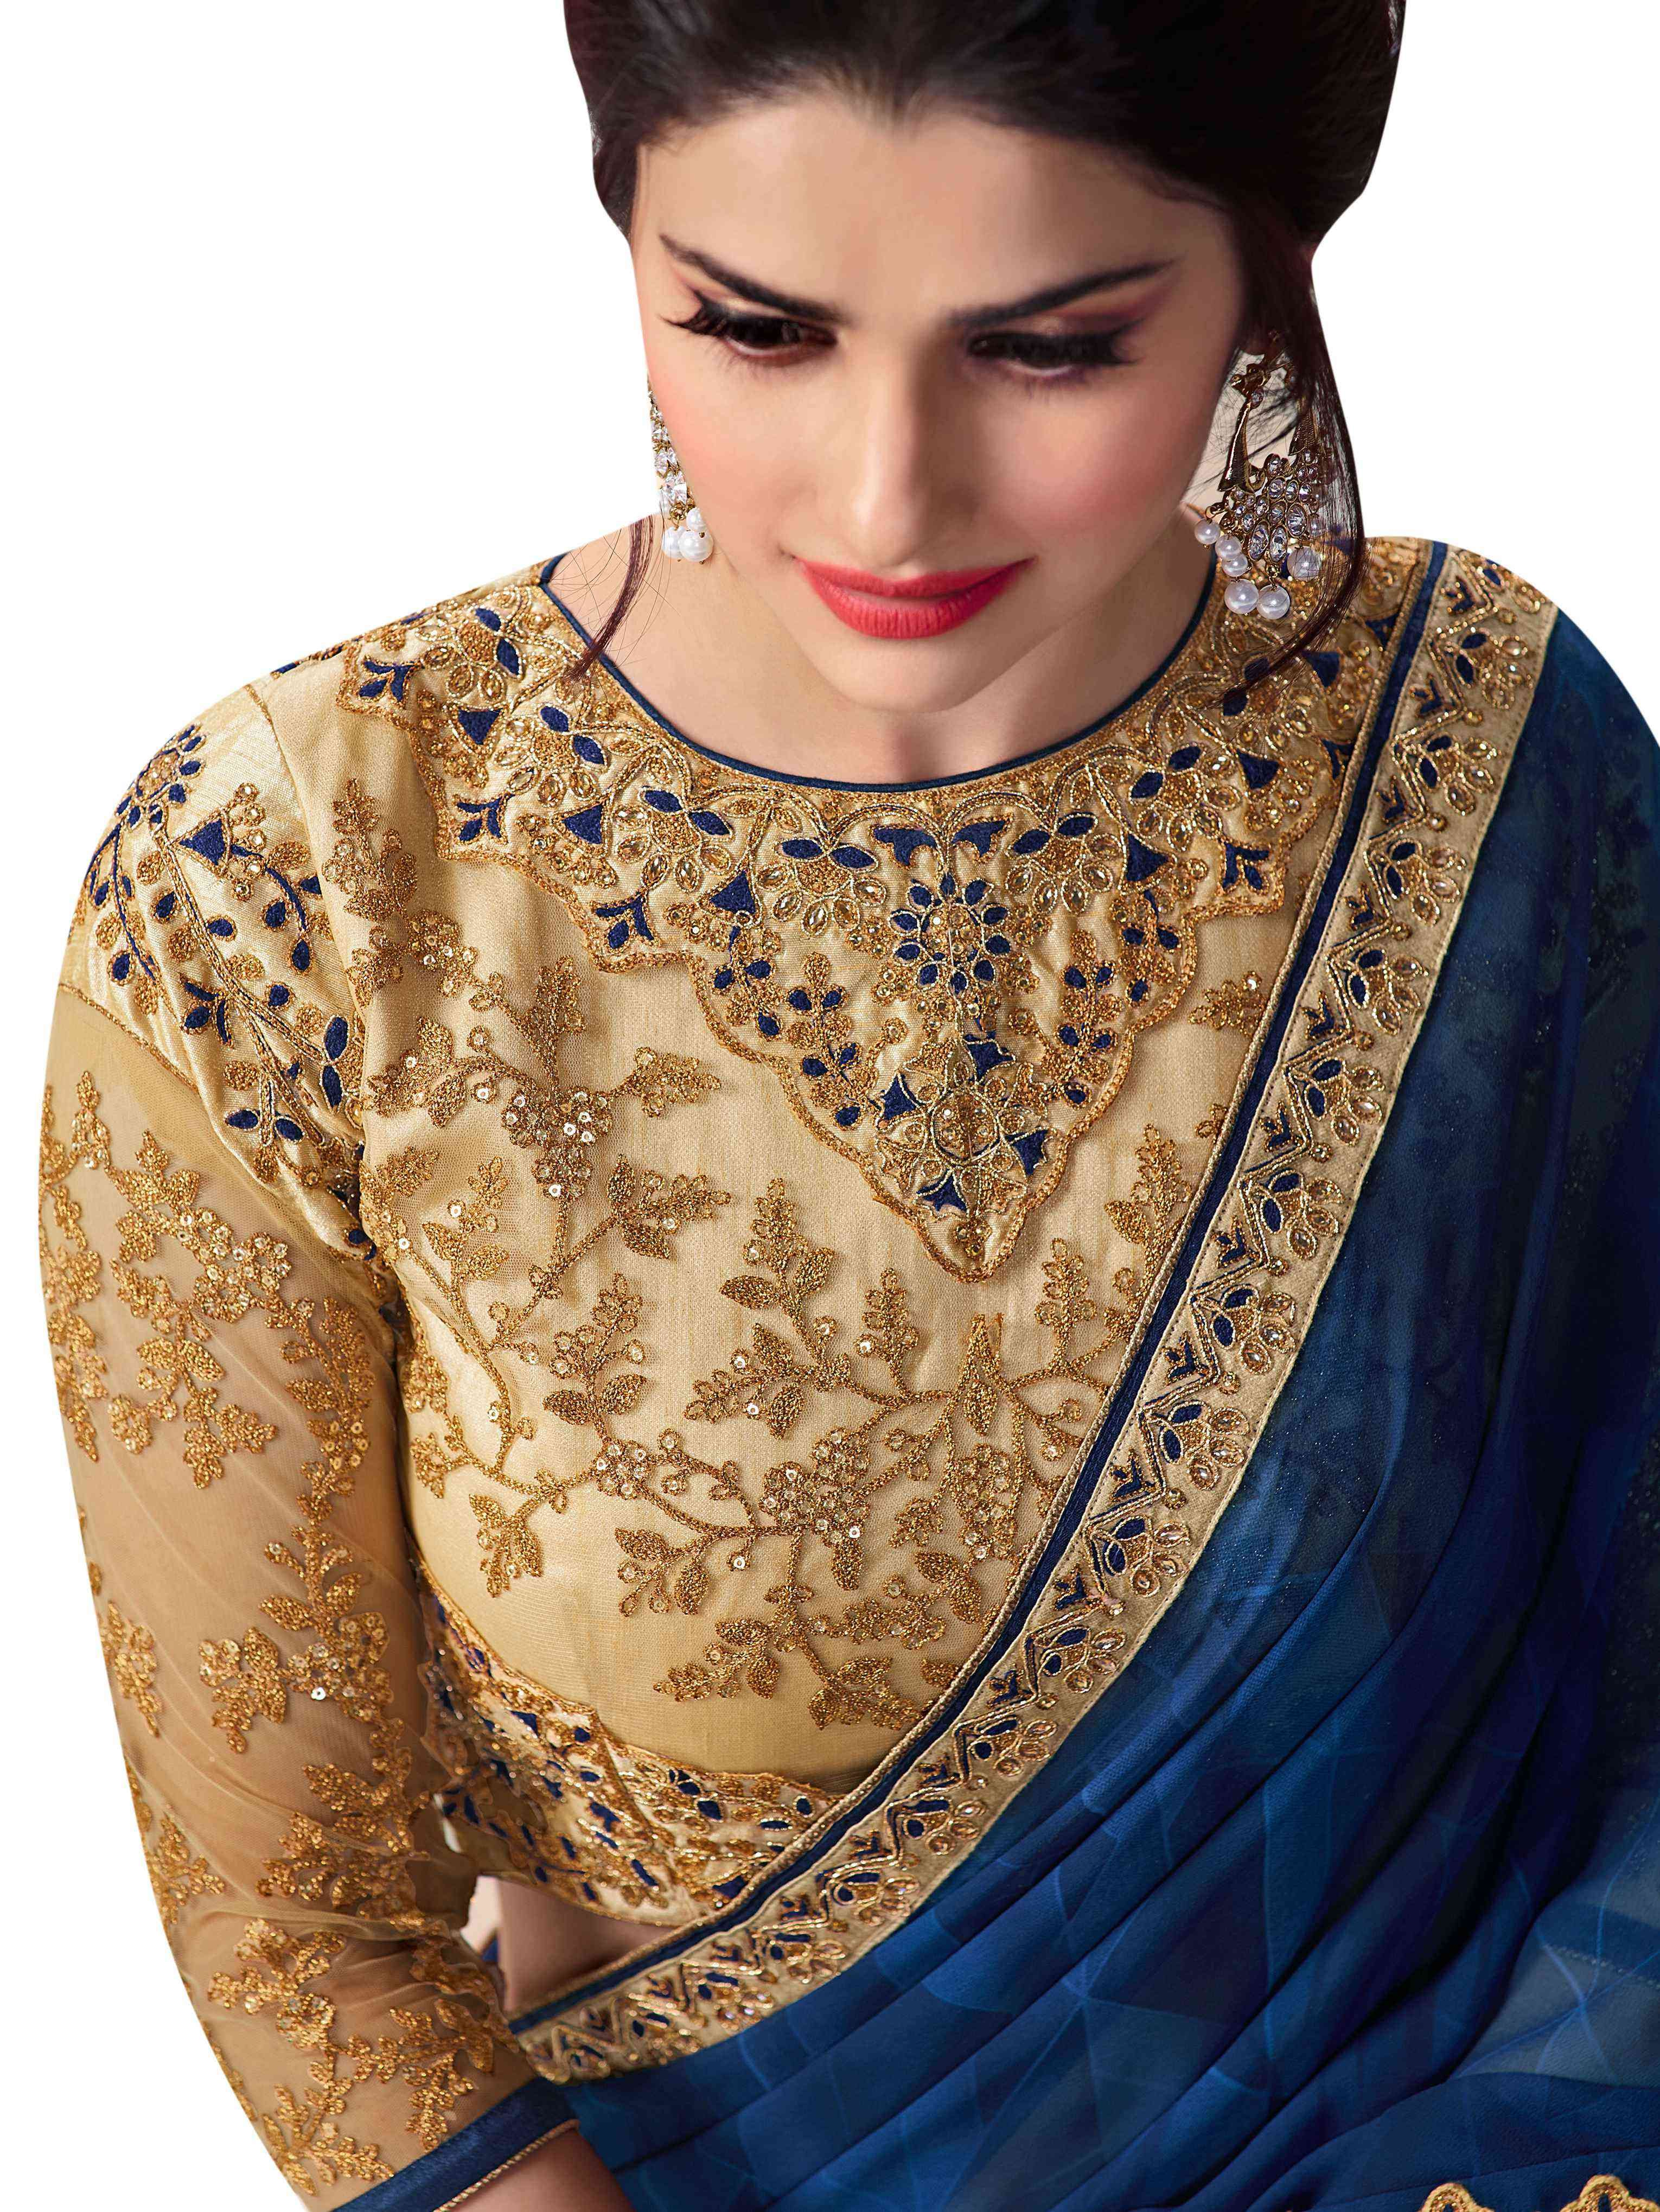 Party Wear Saree Blouse Design Awesome Embroidery Work Blouse Designs Latest Saree Blouse Designs Blouse Designs High Neck